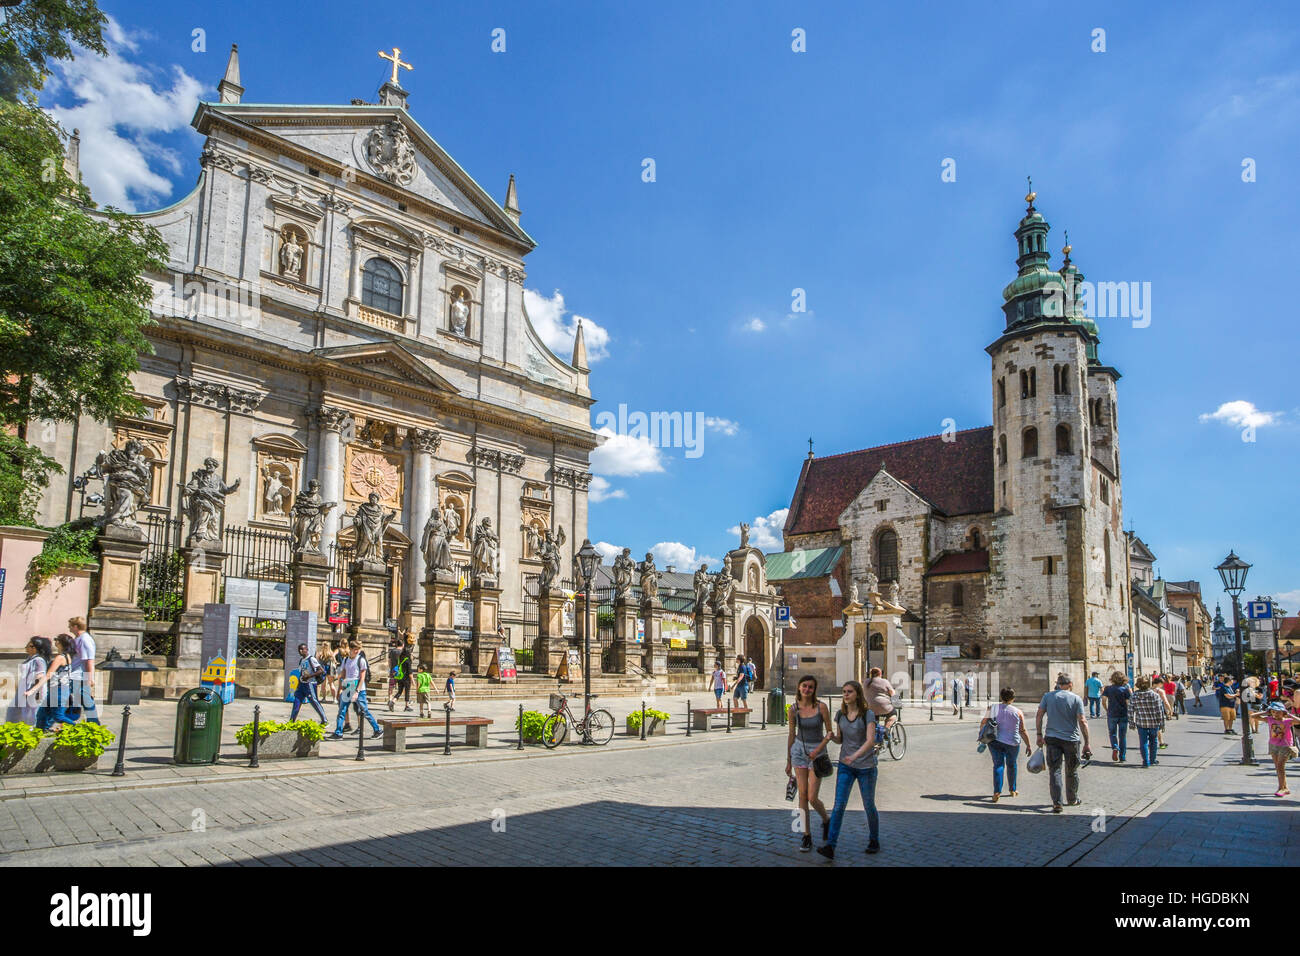 St. Peter and Paul Church in Krakow - Stock Image